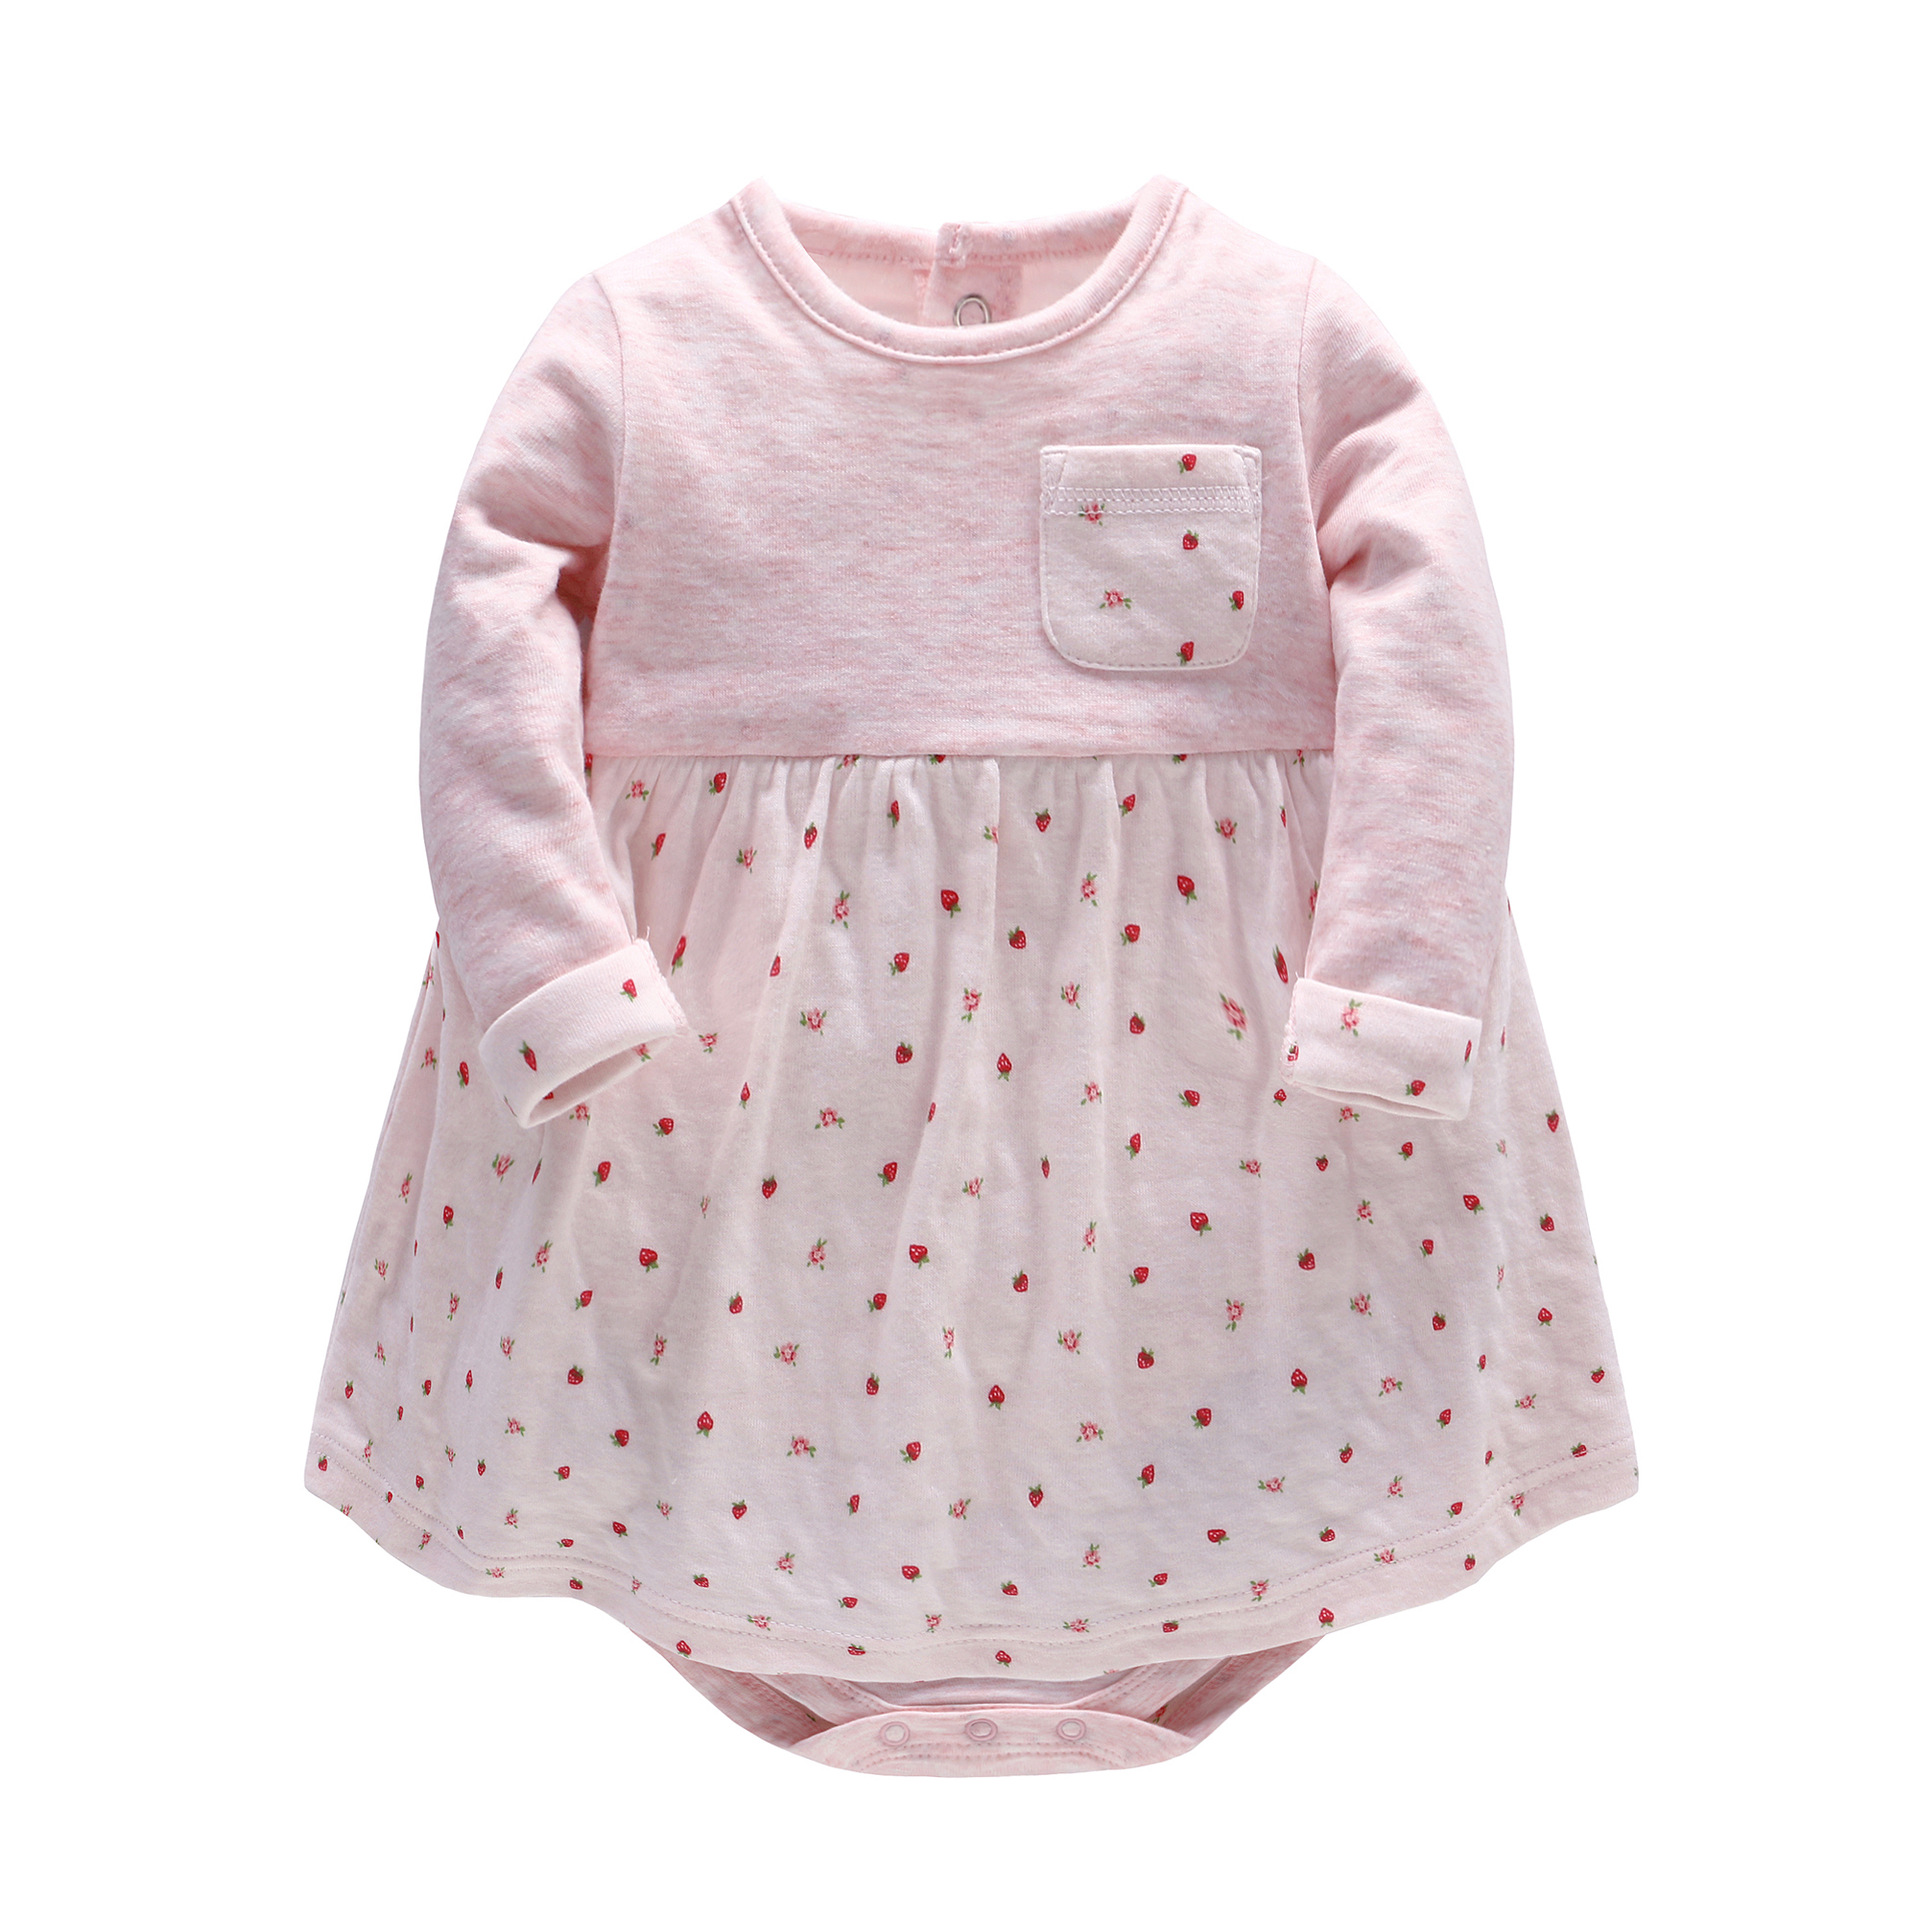 Shop our new range of baby clothing at Boden. From rompers and playsets to knitwear and special gifts for newborns and toddlers, they're all right here in sizes 0 - 4 years.